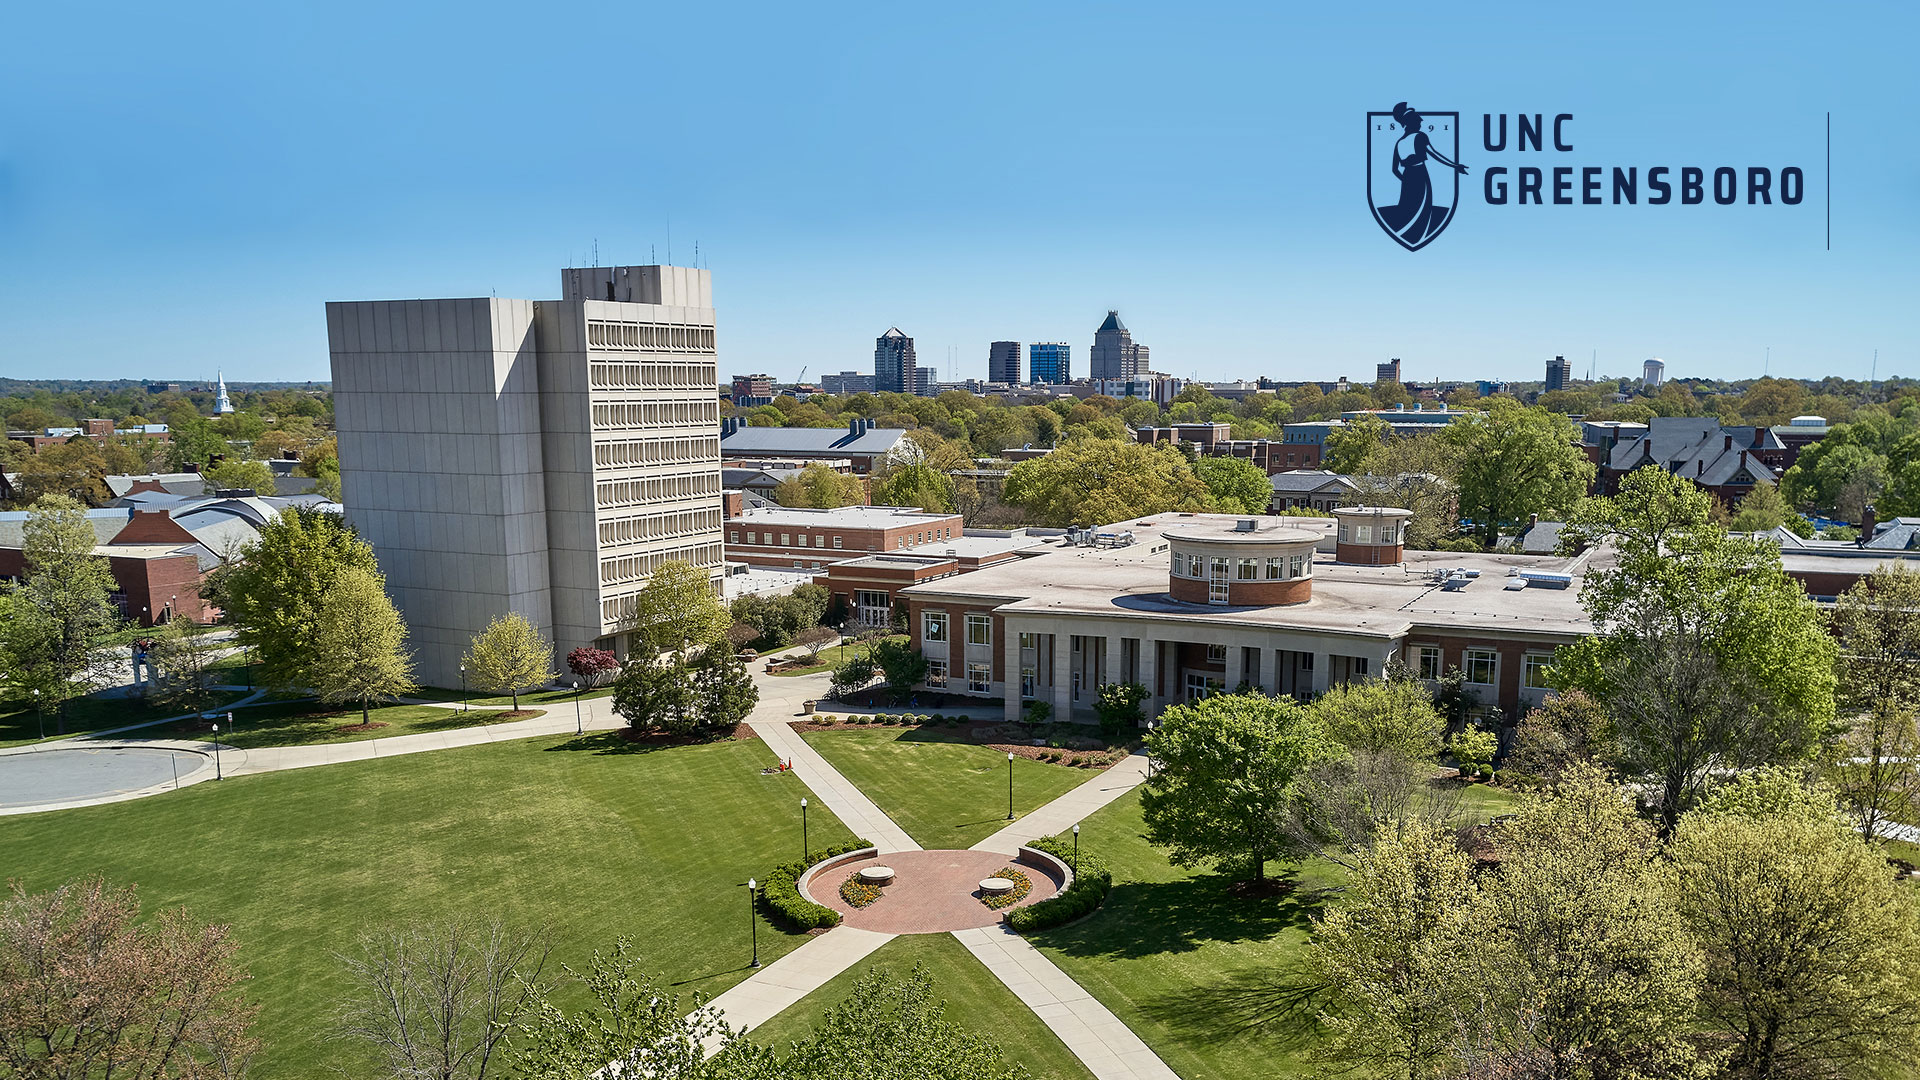 Wallpaper Image - Aerial view of EUC and Library Tower (1920 x 1080 pixels)